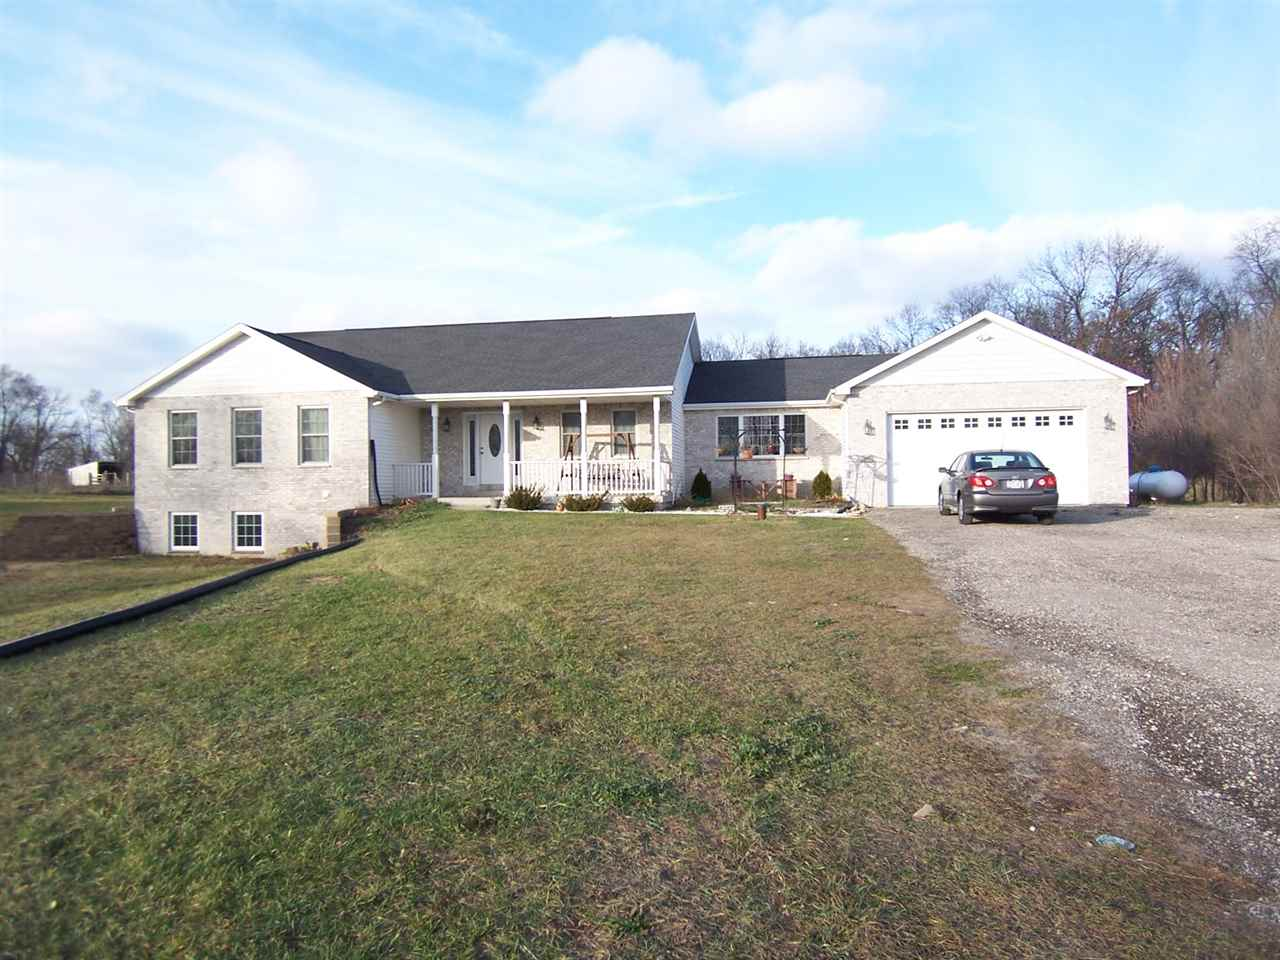 12016 W Carroll Rd, Newark, WI 53511